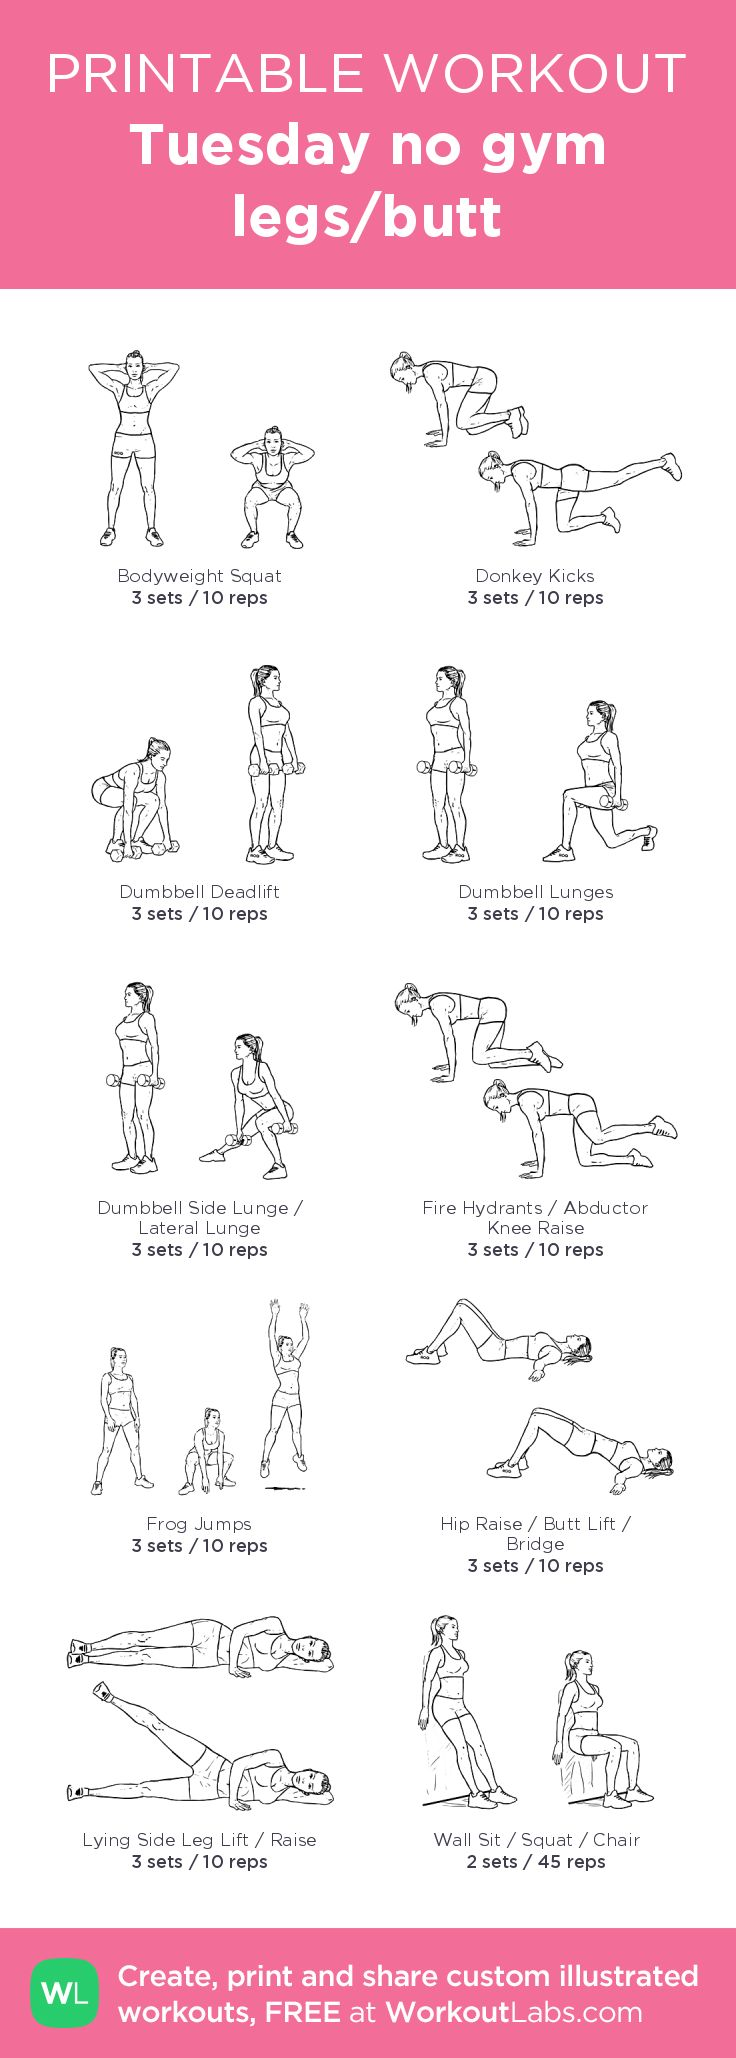 Tuesday no gym legs/butt– my custom exercise plan created at WorkoutLabs.com • Click through to download as a printable workout PDF #customworkout